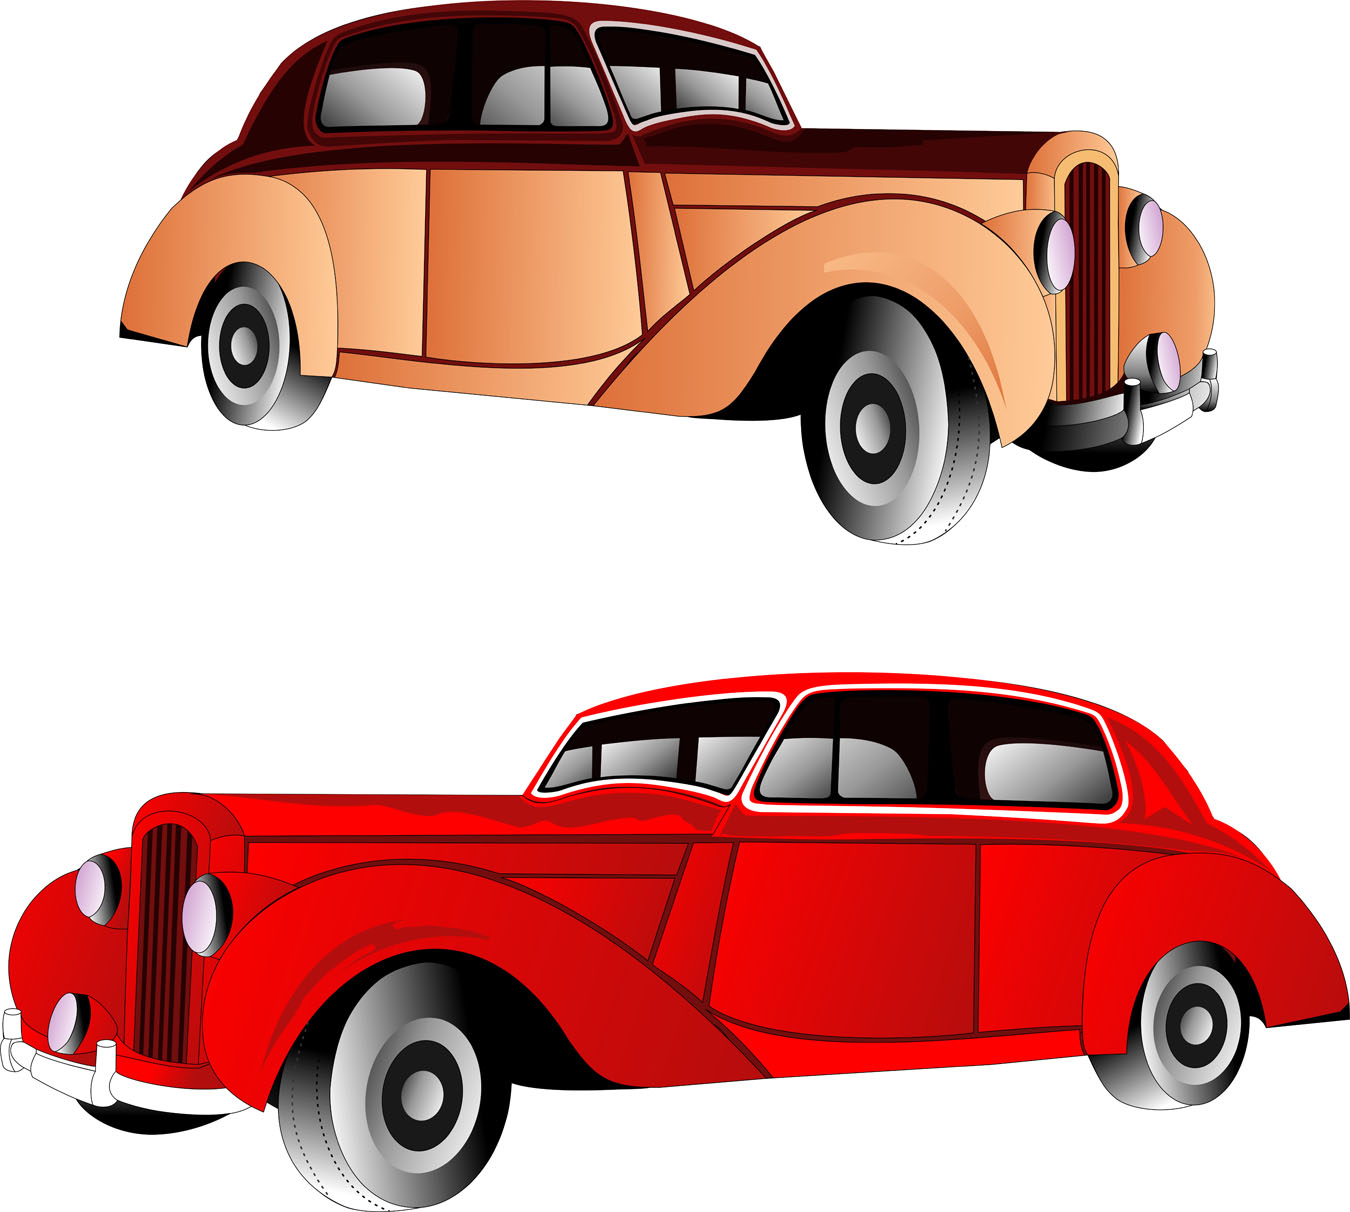 Classic Cars Clipart - Cliparts.co